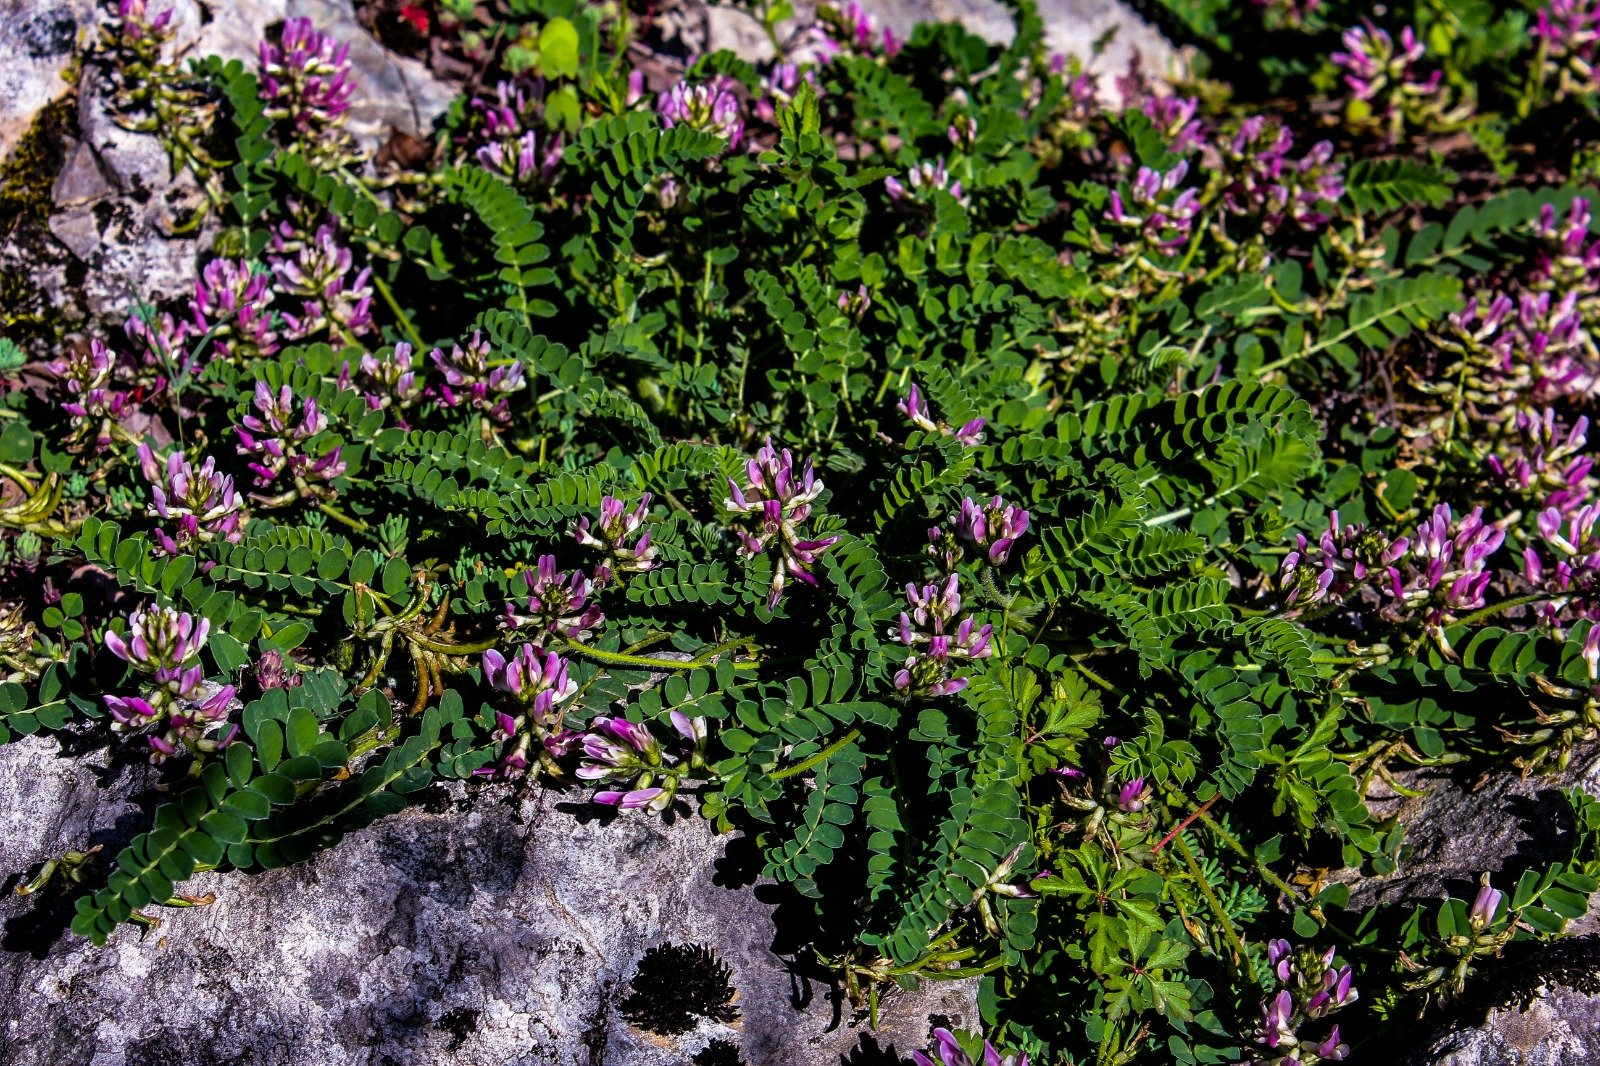 Astragalus bartinense grows in rocky habitats and acts as a groundcover, Bartın province, northern Turkey, July 19, 2020. (AA Photo)